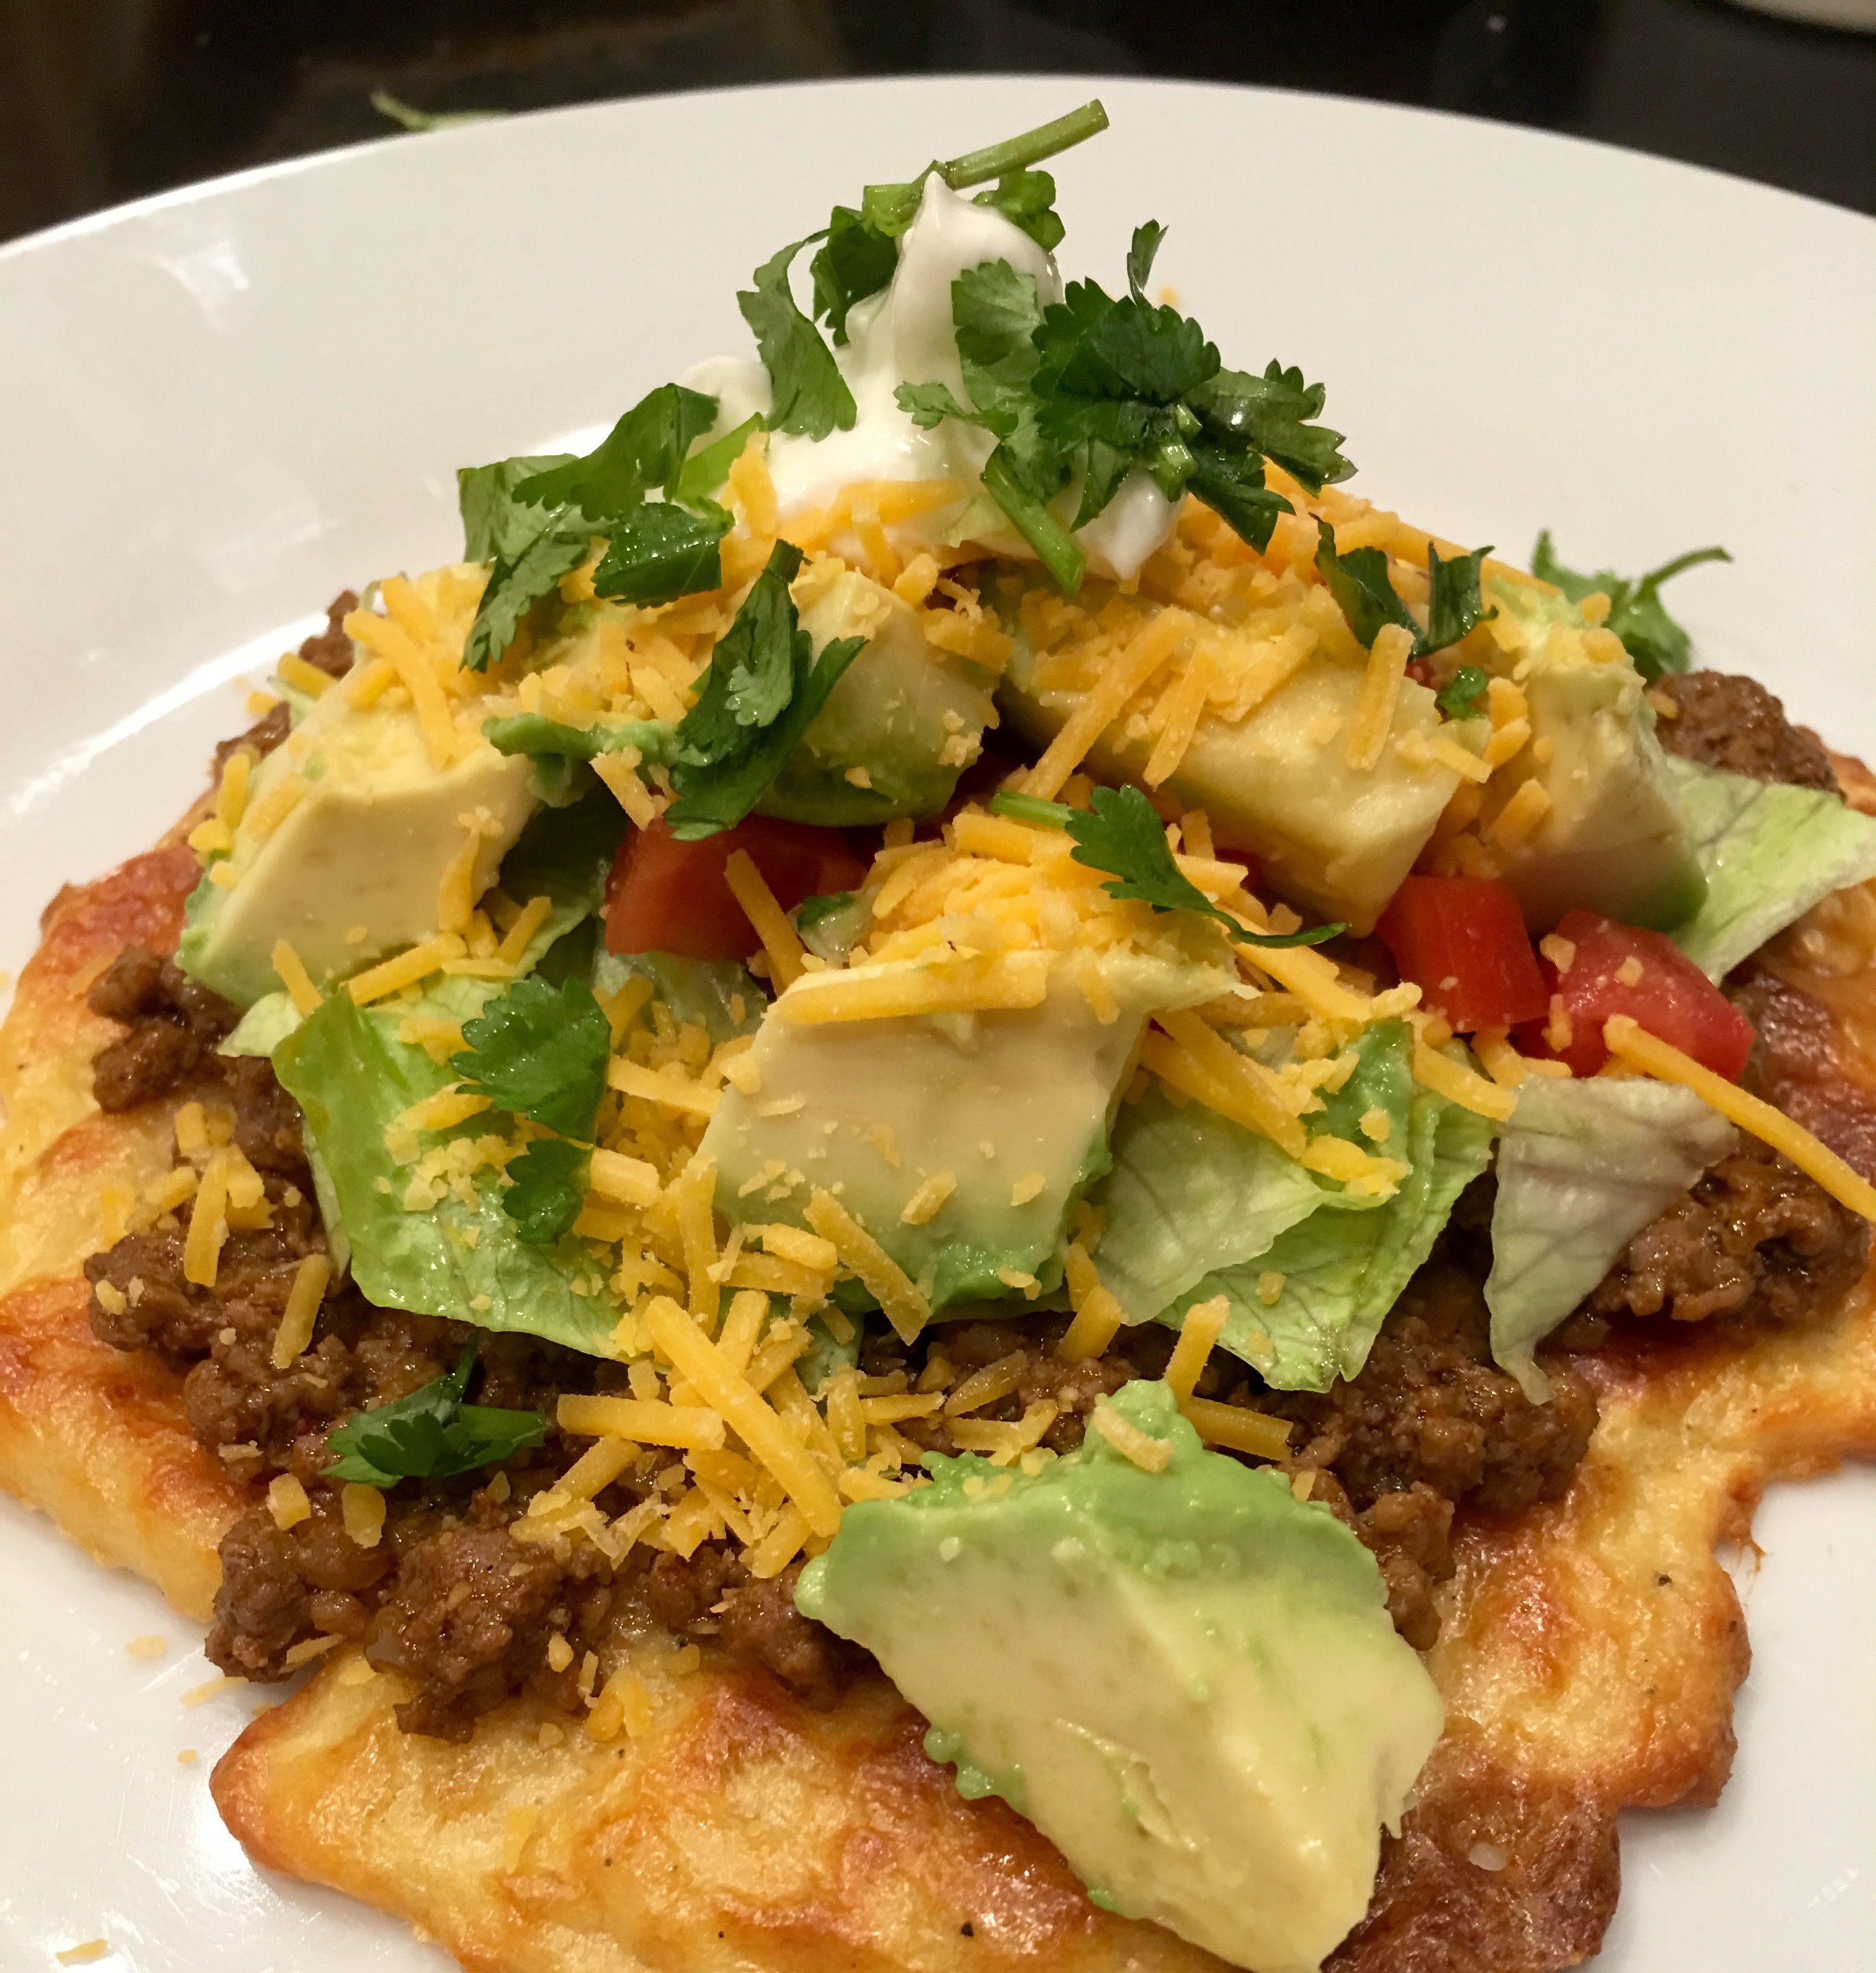 Yes, you can have a low carb tostada! You just make the fathead pizza dough into…Yes, you can have a low carb tostada! You just make the fathead pizza dough into…